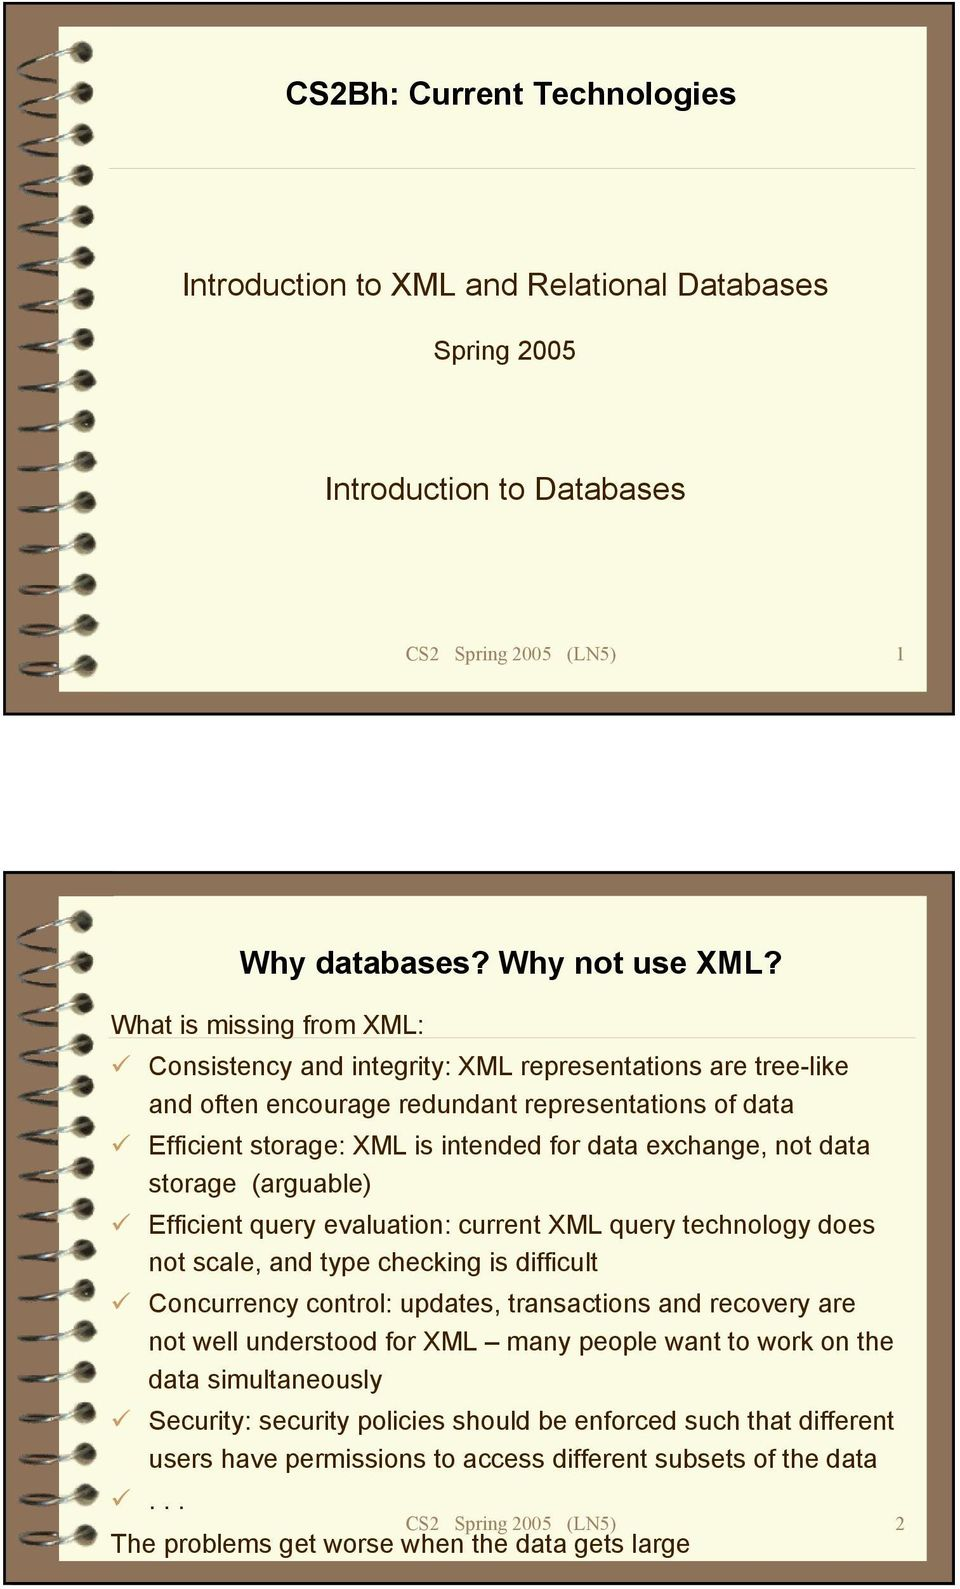 data storage (arguable) Efficient query evaluation: current XML query technology does not scale, and type checking is difficult Concurrency control: updates, transactions and recovery are not well